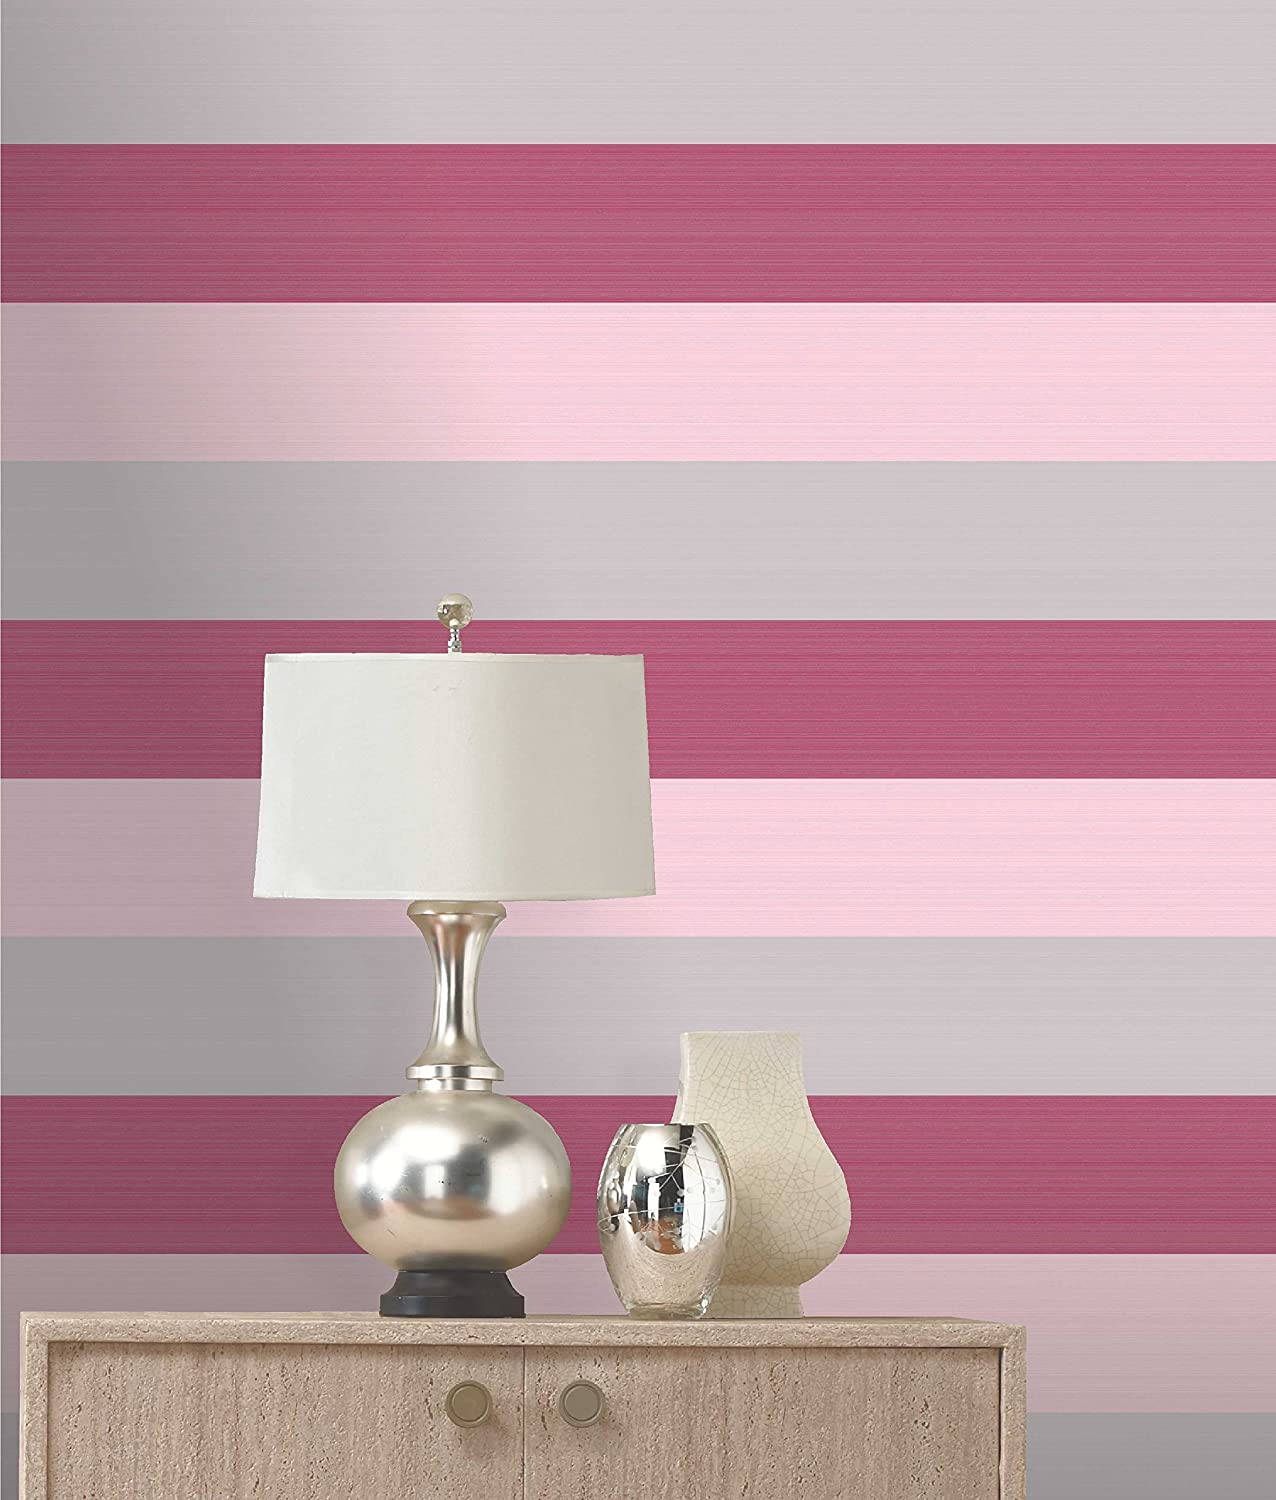 Olivia II Pink Cerise Silver Striped Wallpaper 6162 Amazoncouk DIY Tools